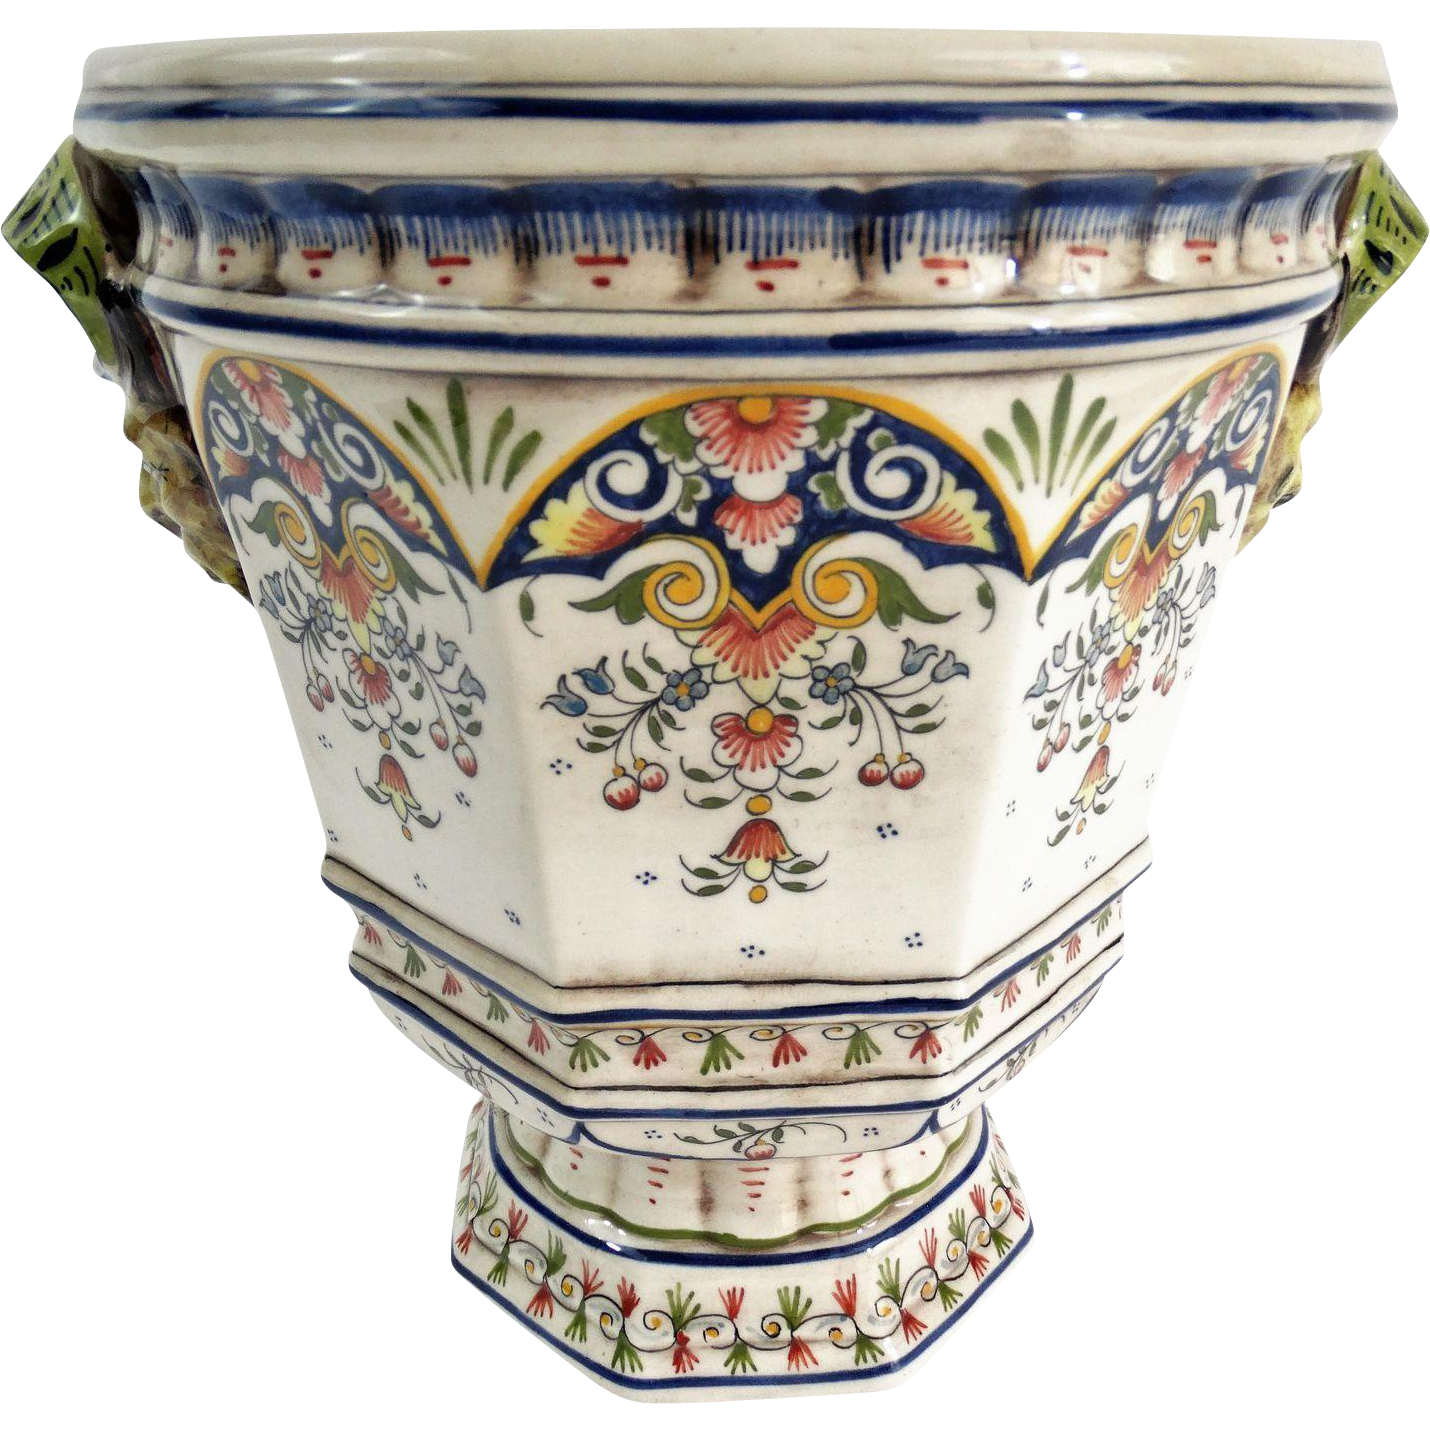 antique french faience rouen cache pot jardiniere from faded rose antiques llc on ruby lane. Black Bedroom Furniture Sets. Home Design Ideas